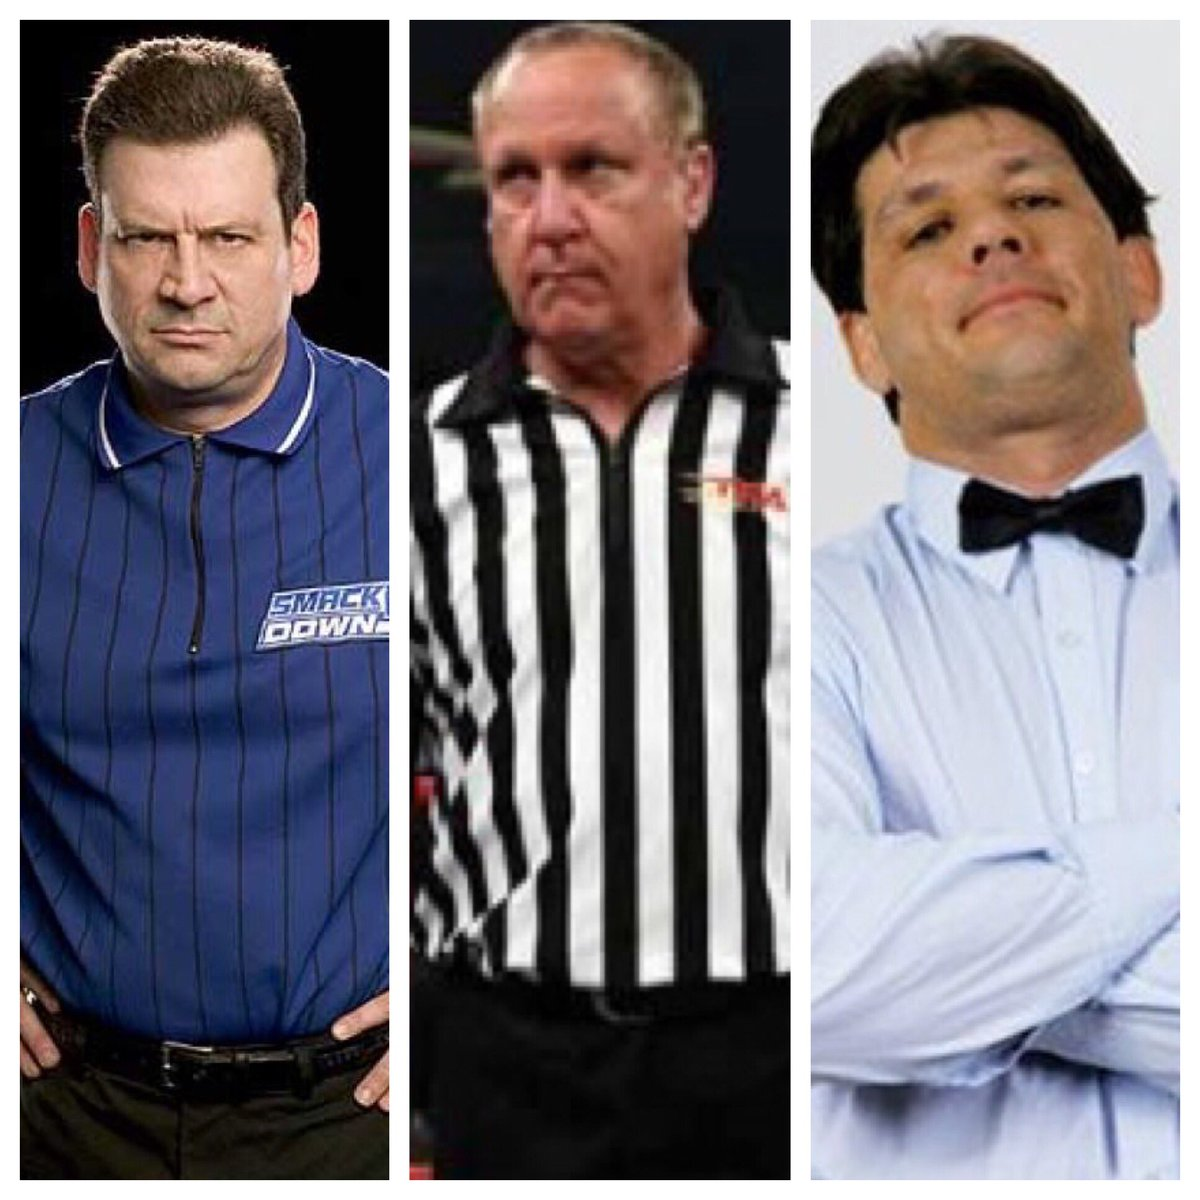 The NBA has named the Game 5 officiating crew .... #Upgrade https://t.co/737XDoTrmp